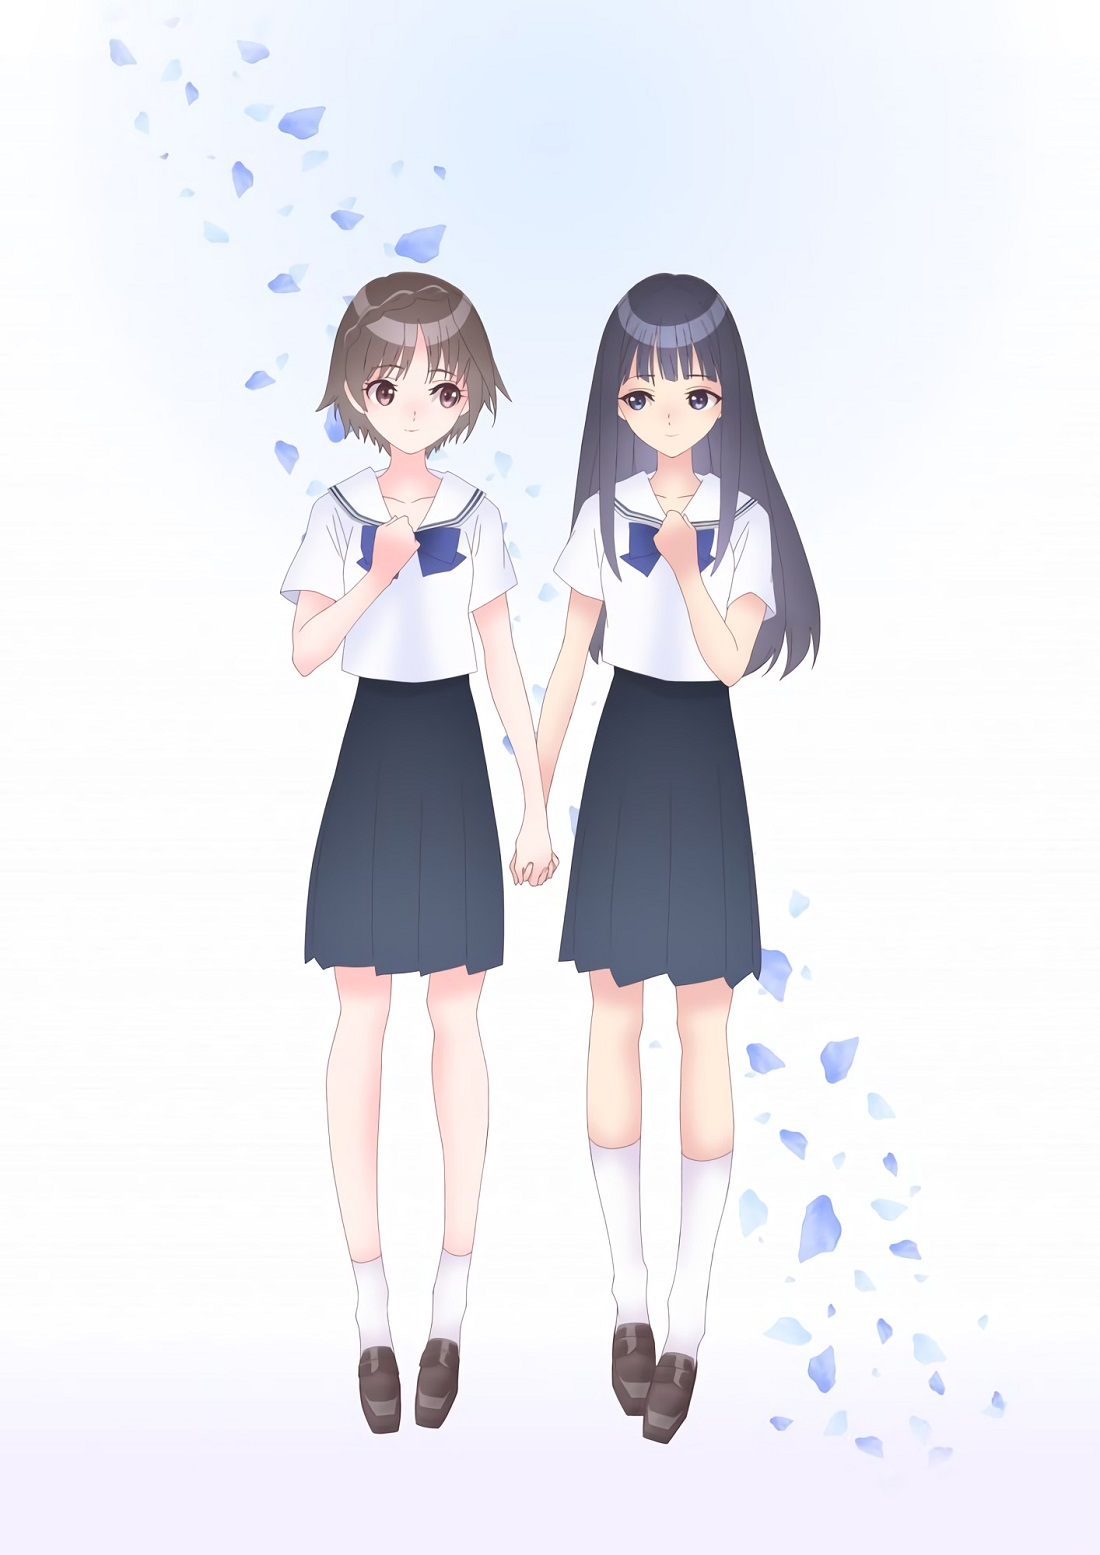 Blue Reflection: Two blue